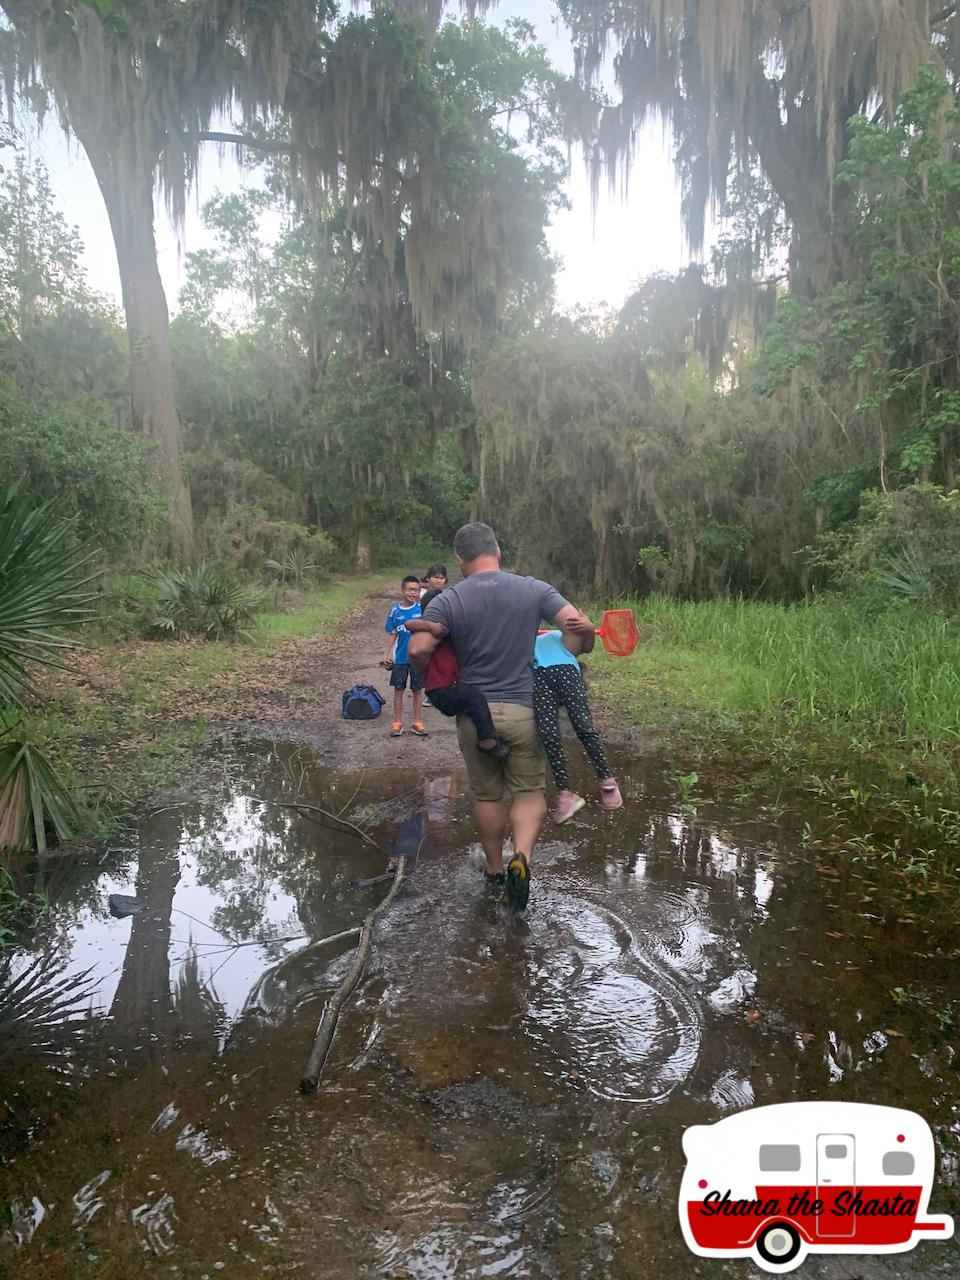 Trail-Puddles-to-Gator-Walk-at-Fontainebleau